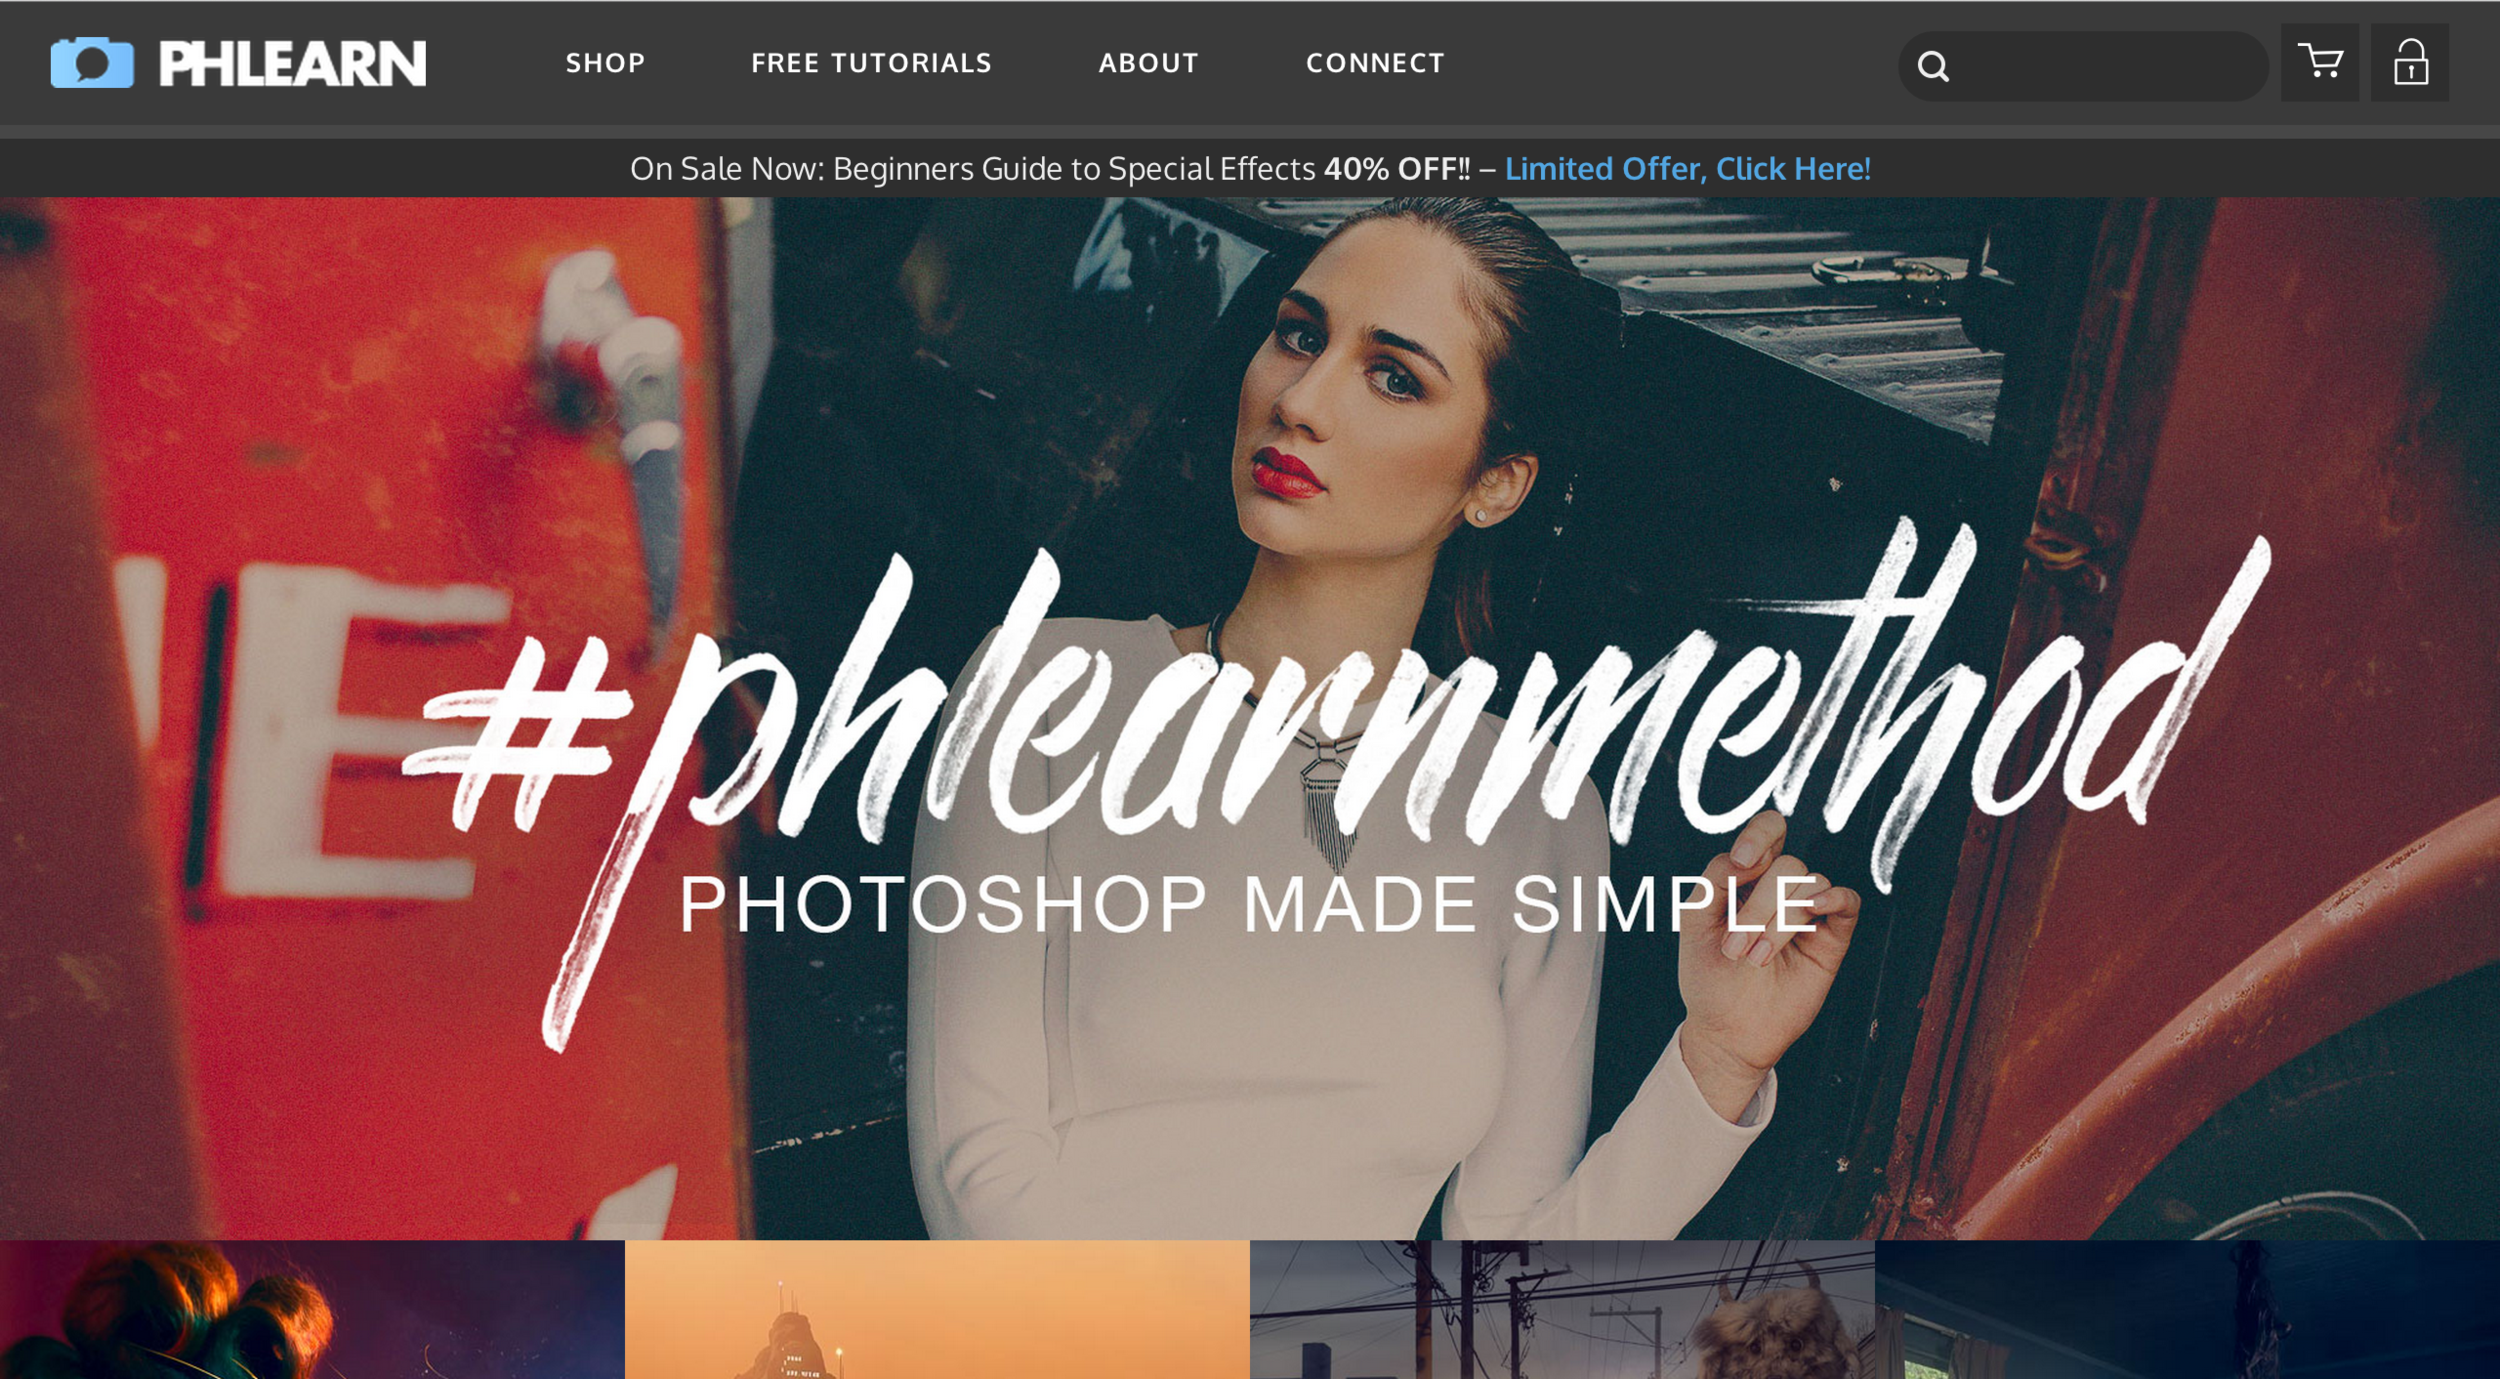 Phlearn_Site